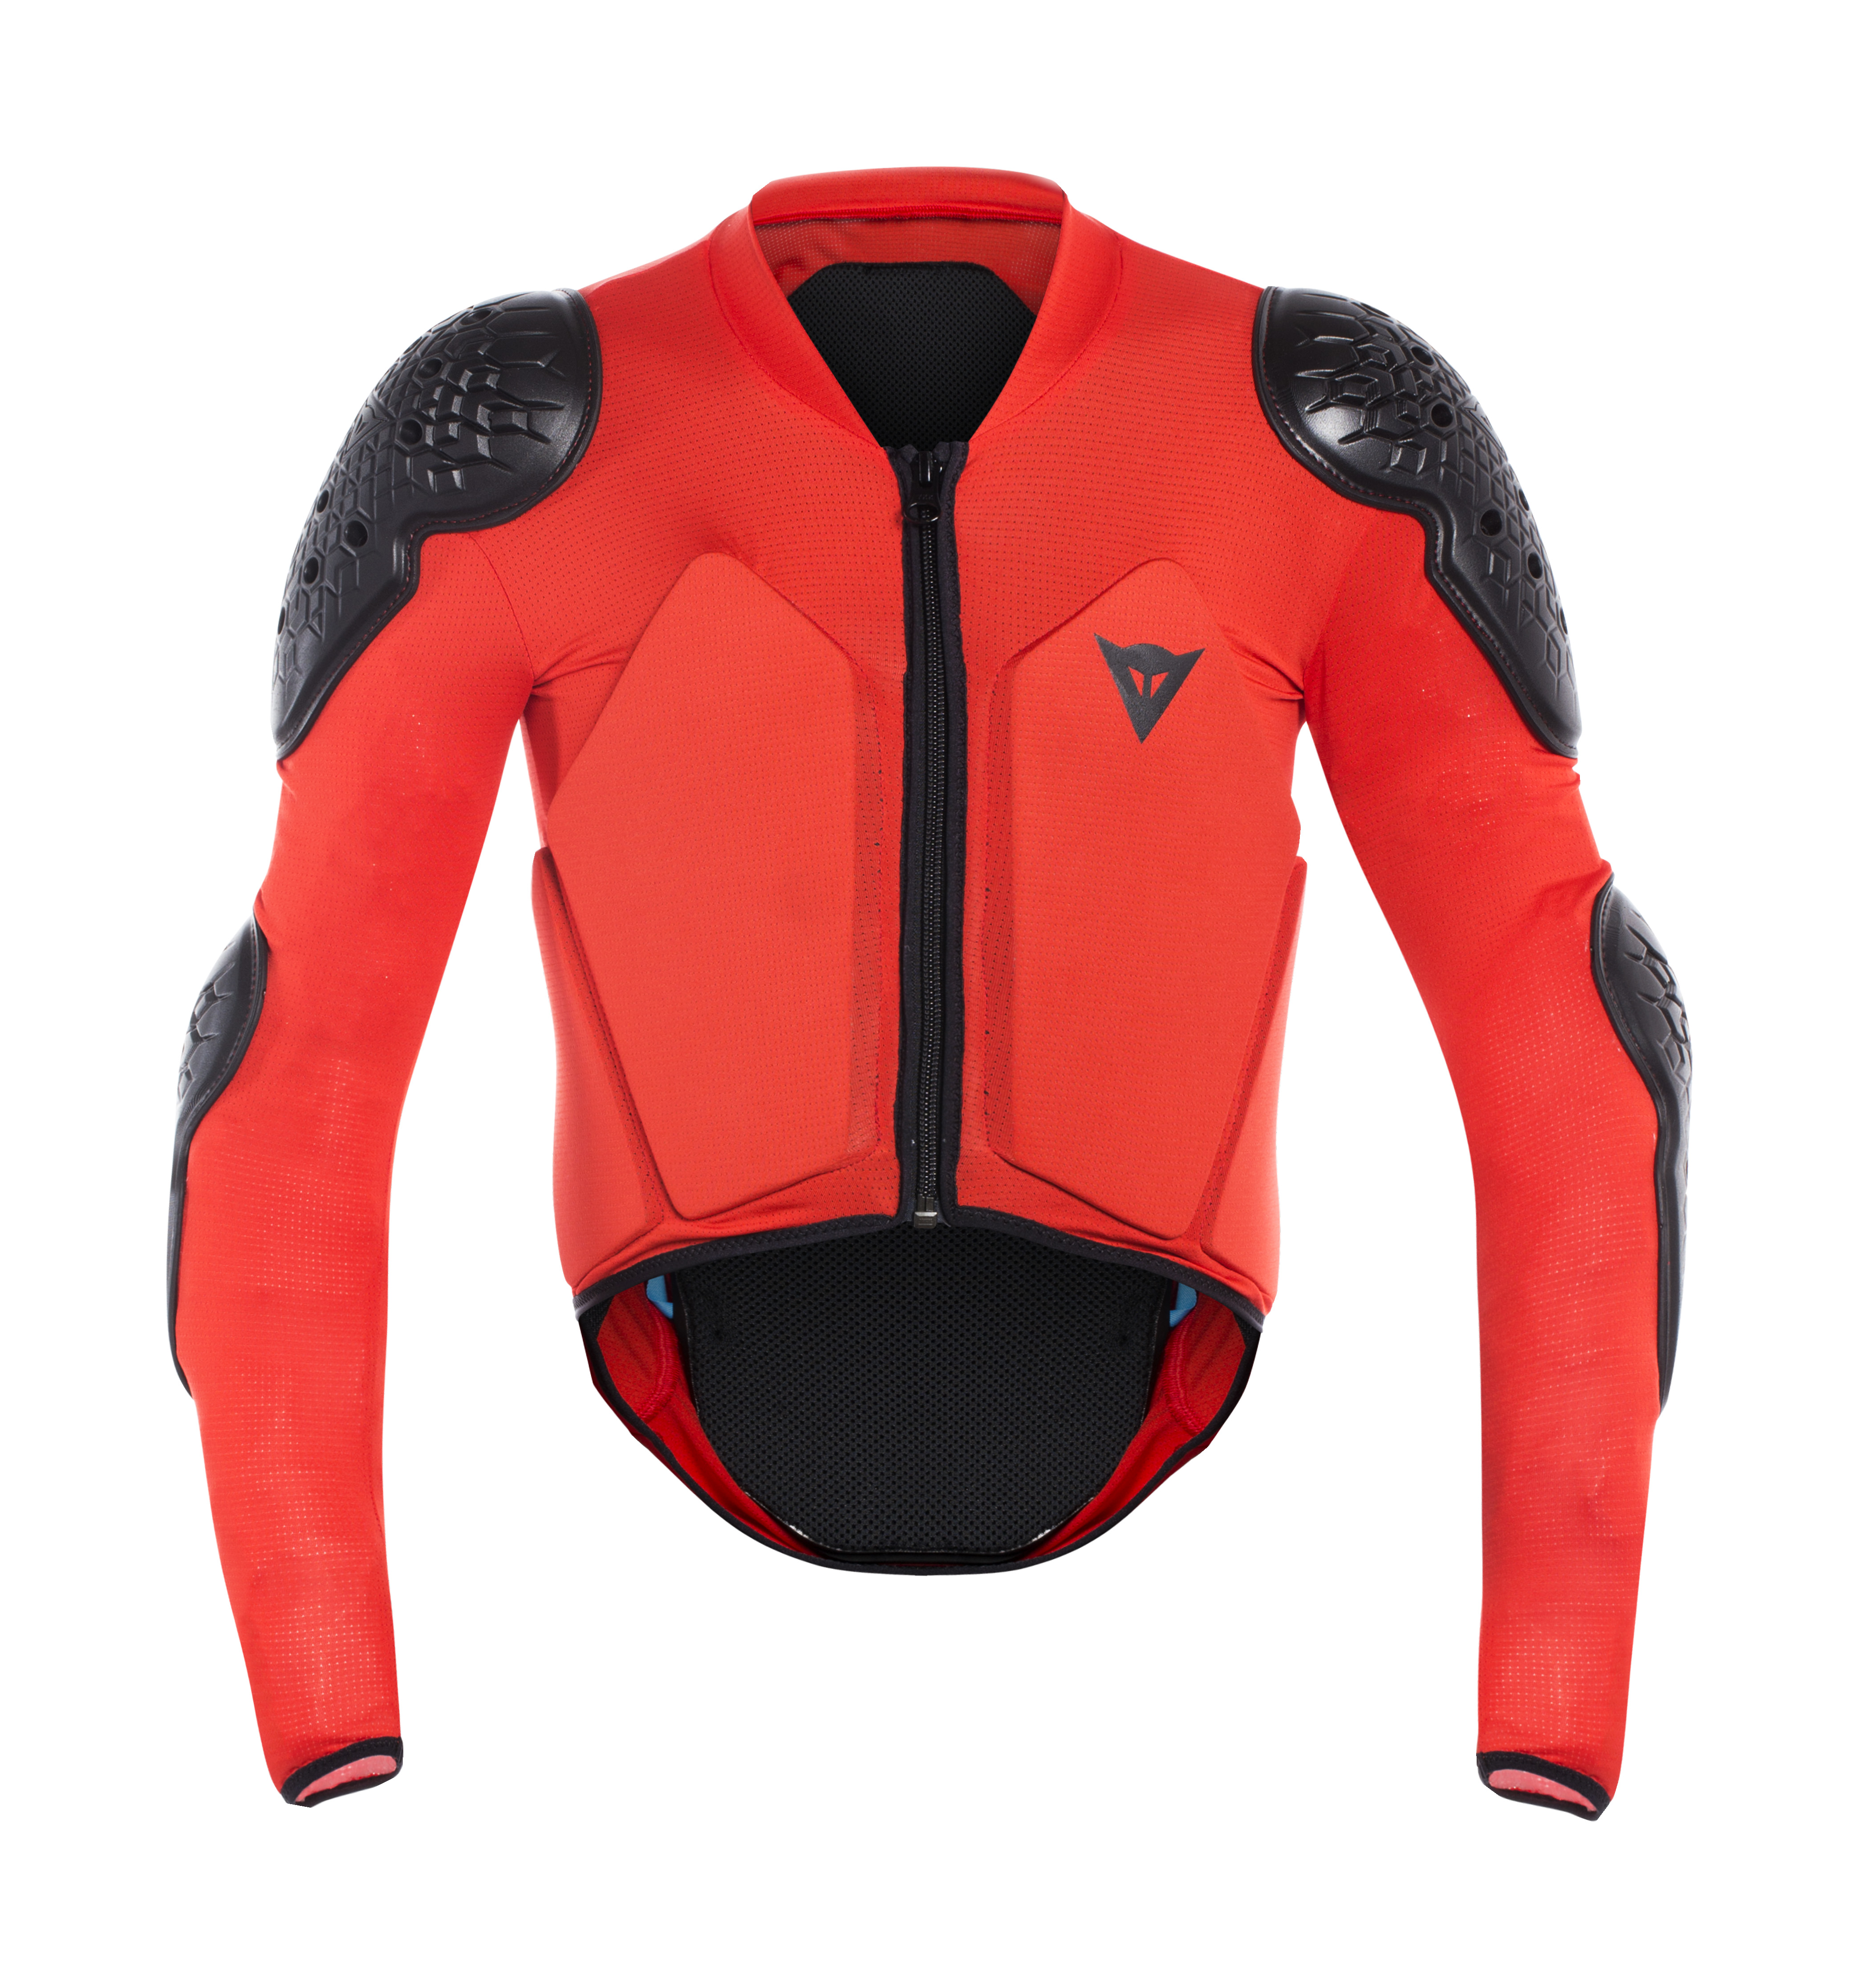 Dainese-Scarabeo-Juniour-Safety-Jacket-Black-Red-L